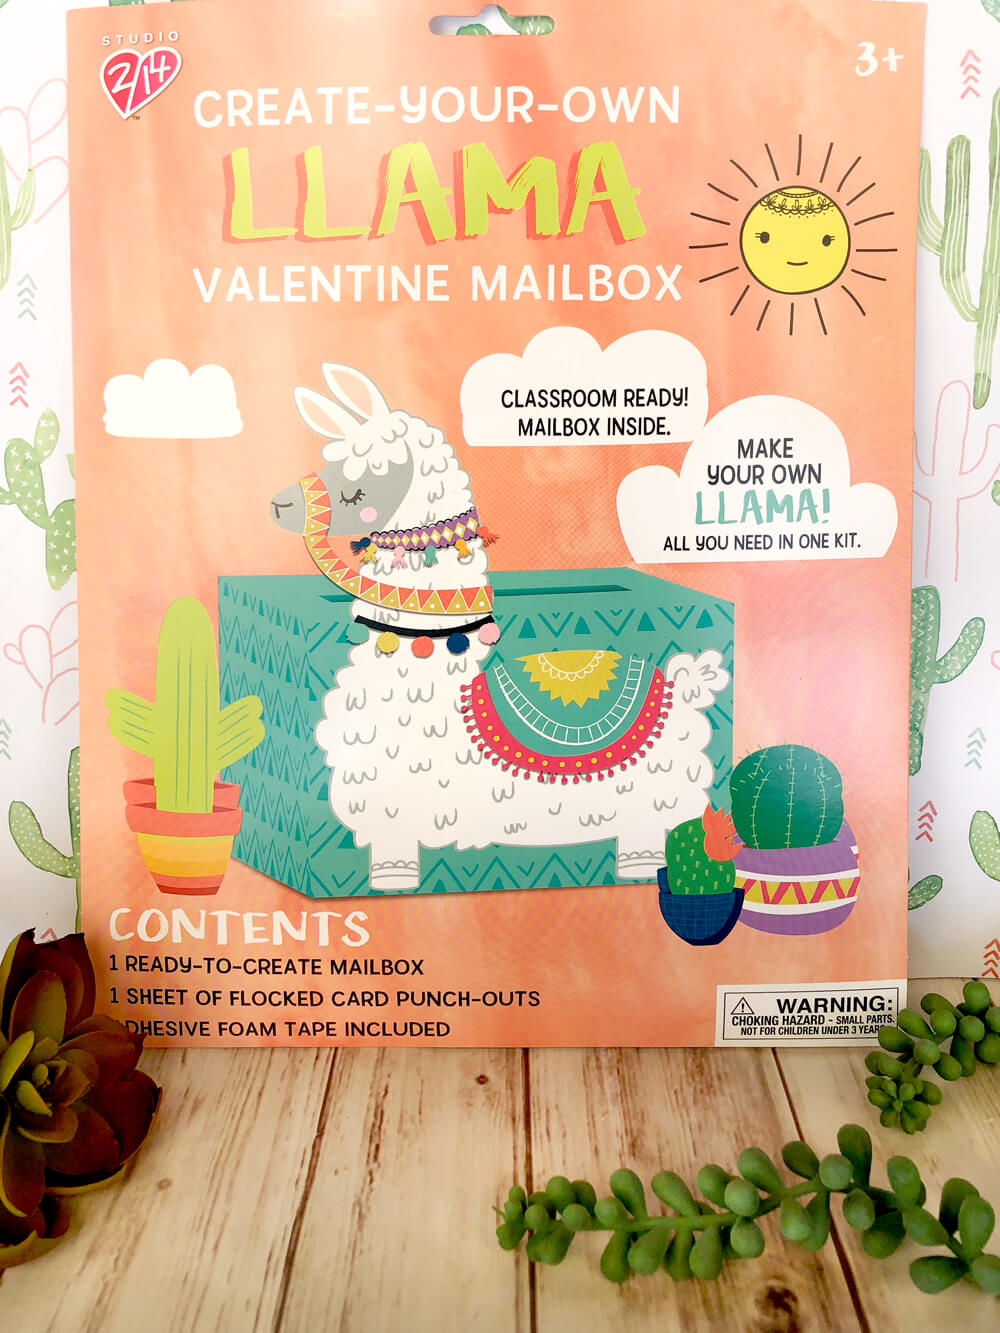 Llama valentine box kit for cactus valentines days cards